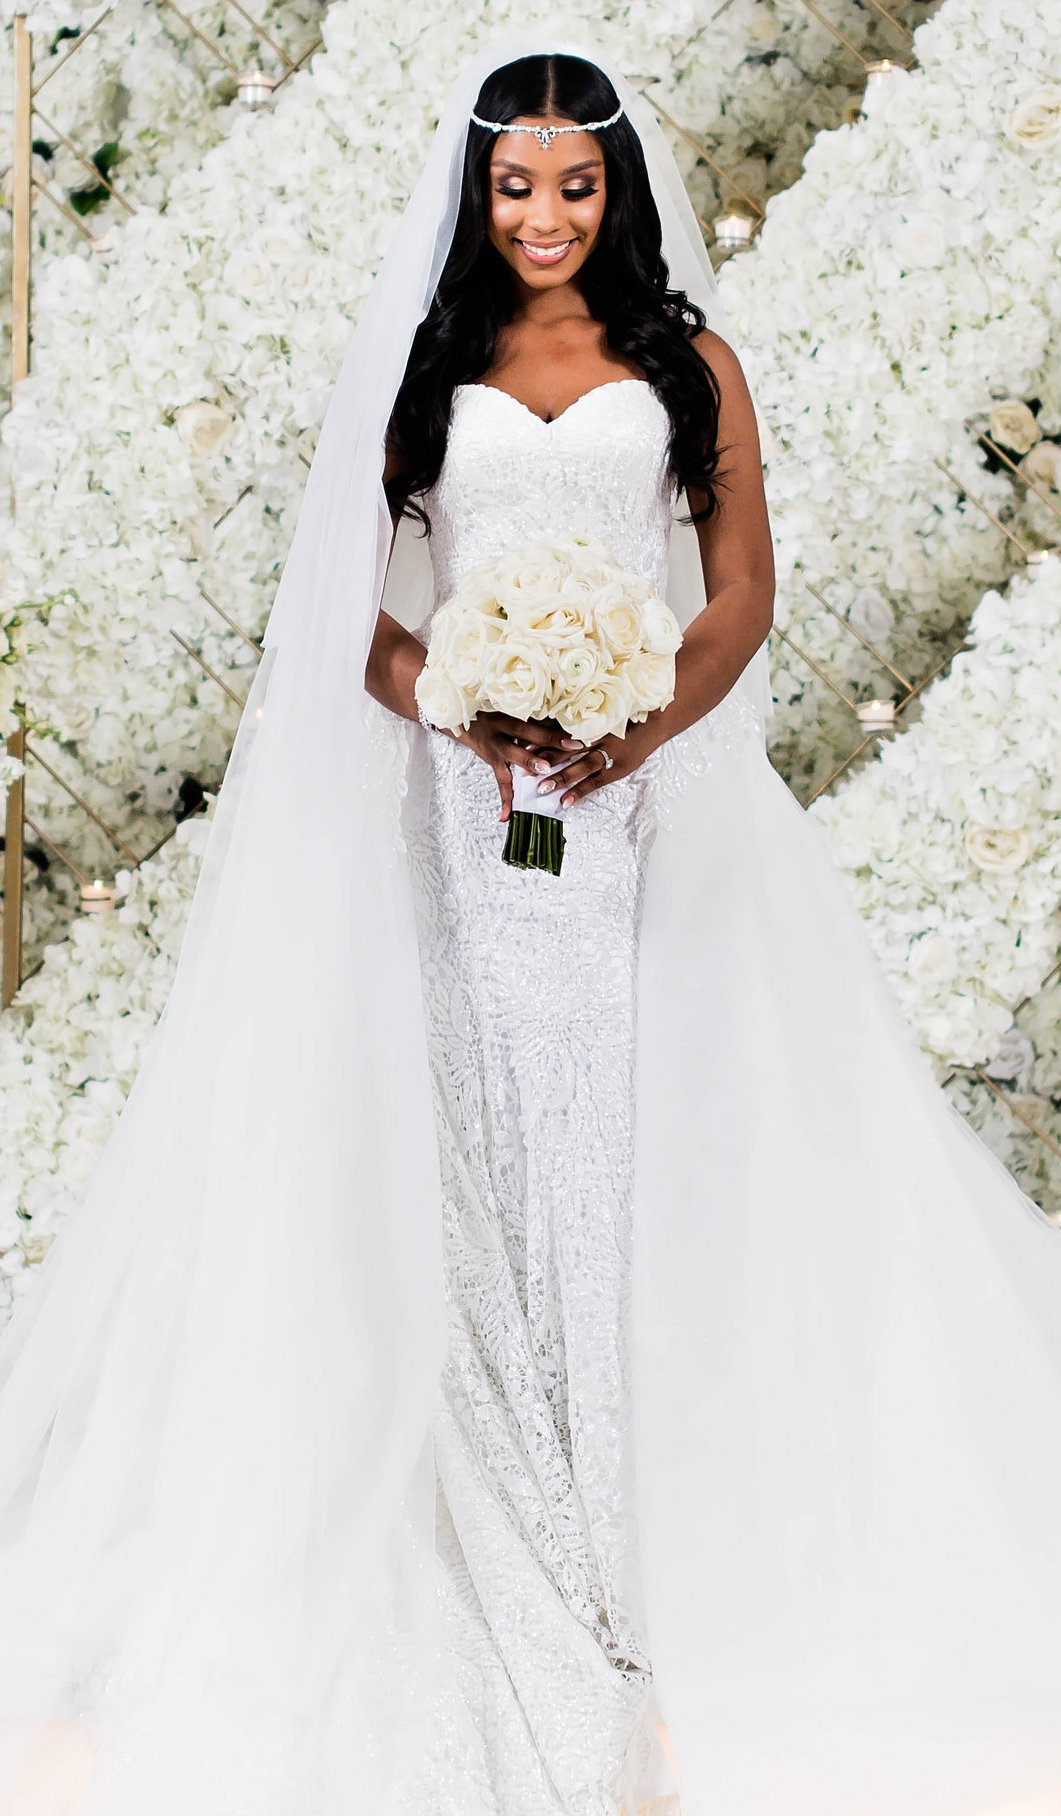 African American bride with a lace strapless wedding dress with overskirt - Photography: Pharris Photos